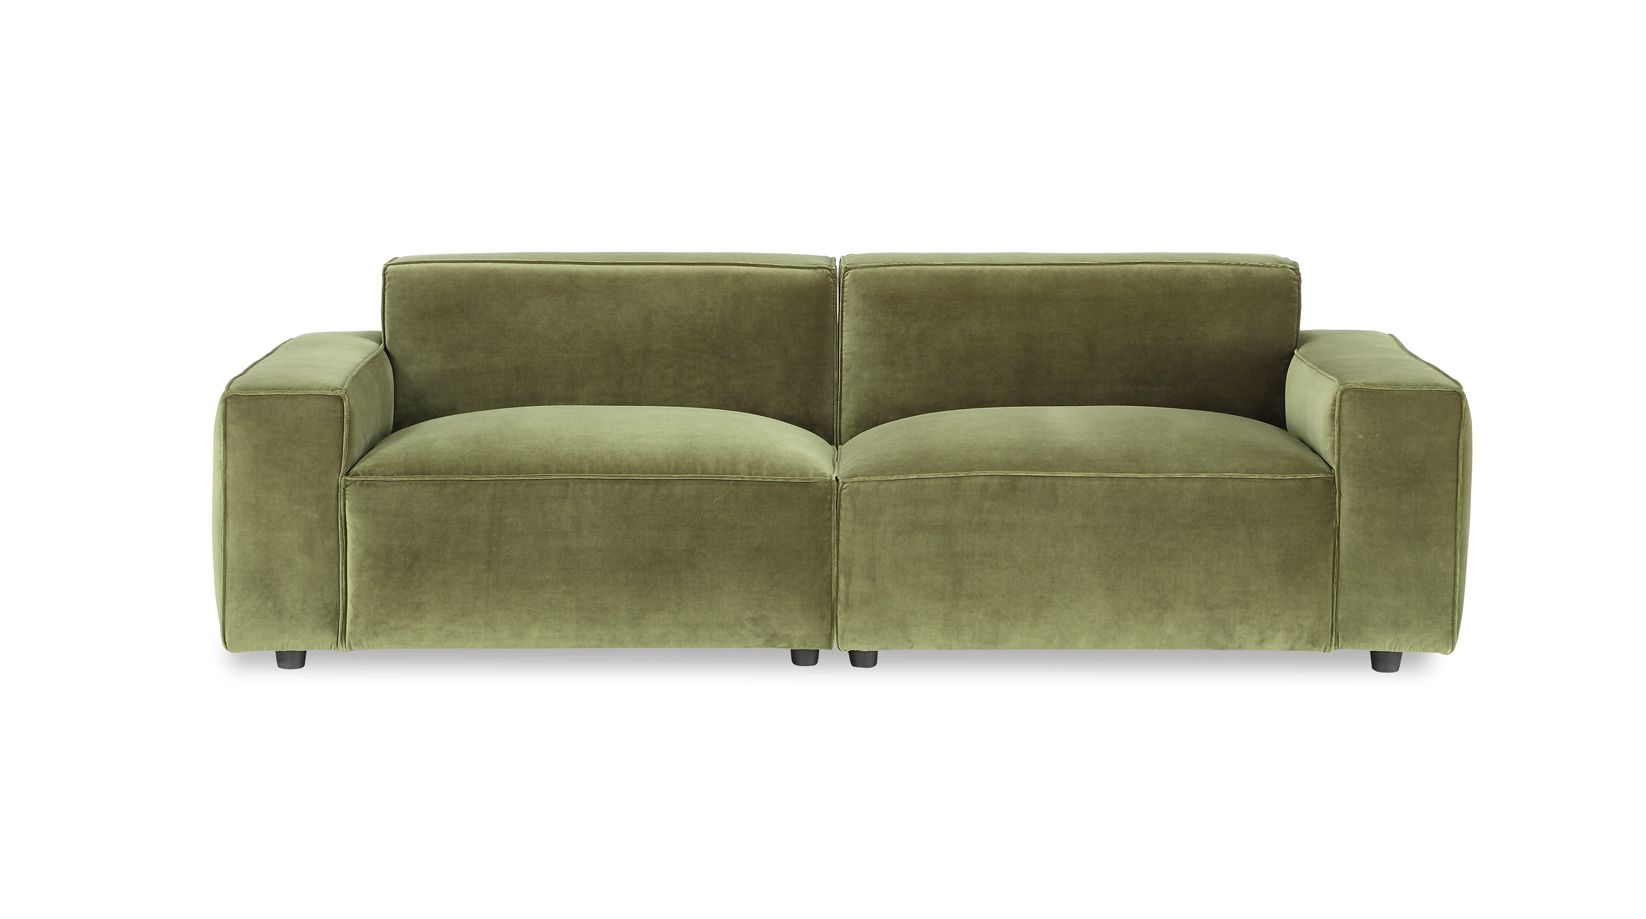 Olafur Modular Sofa New Collection Bobby Berk For A R T